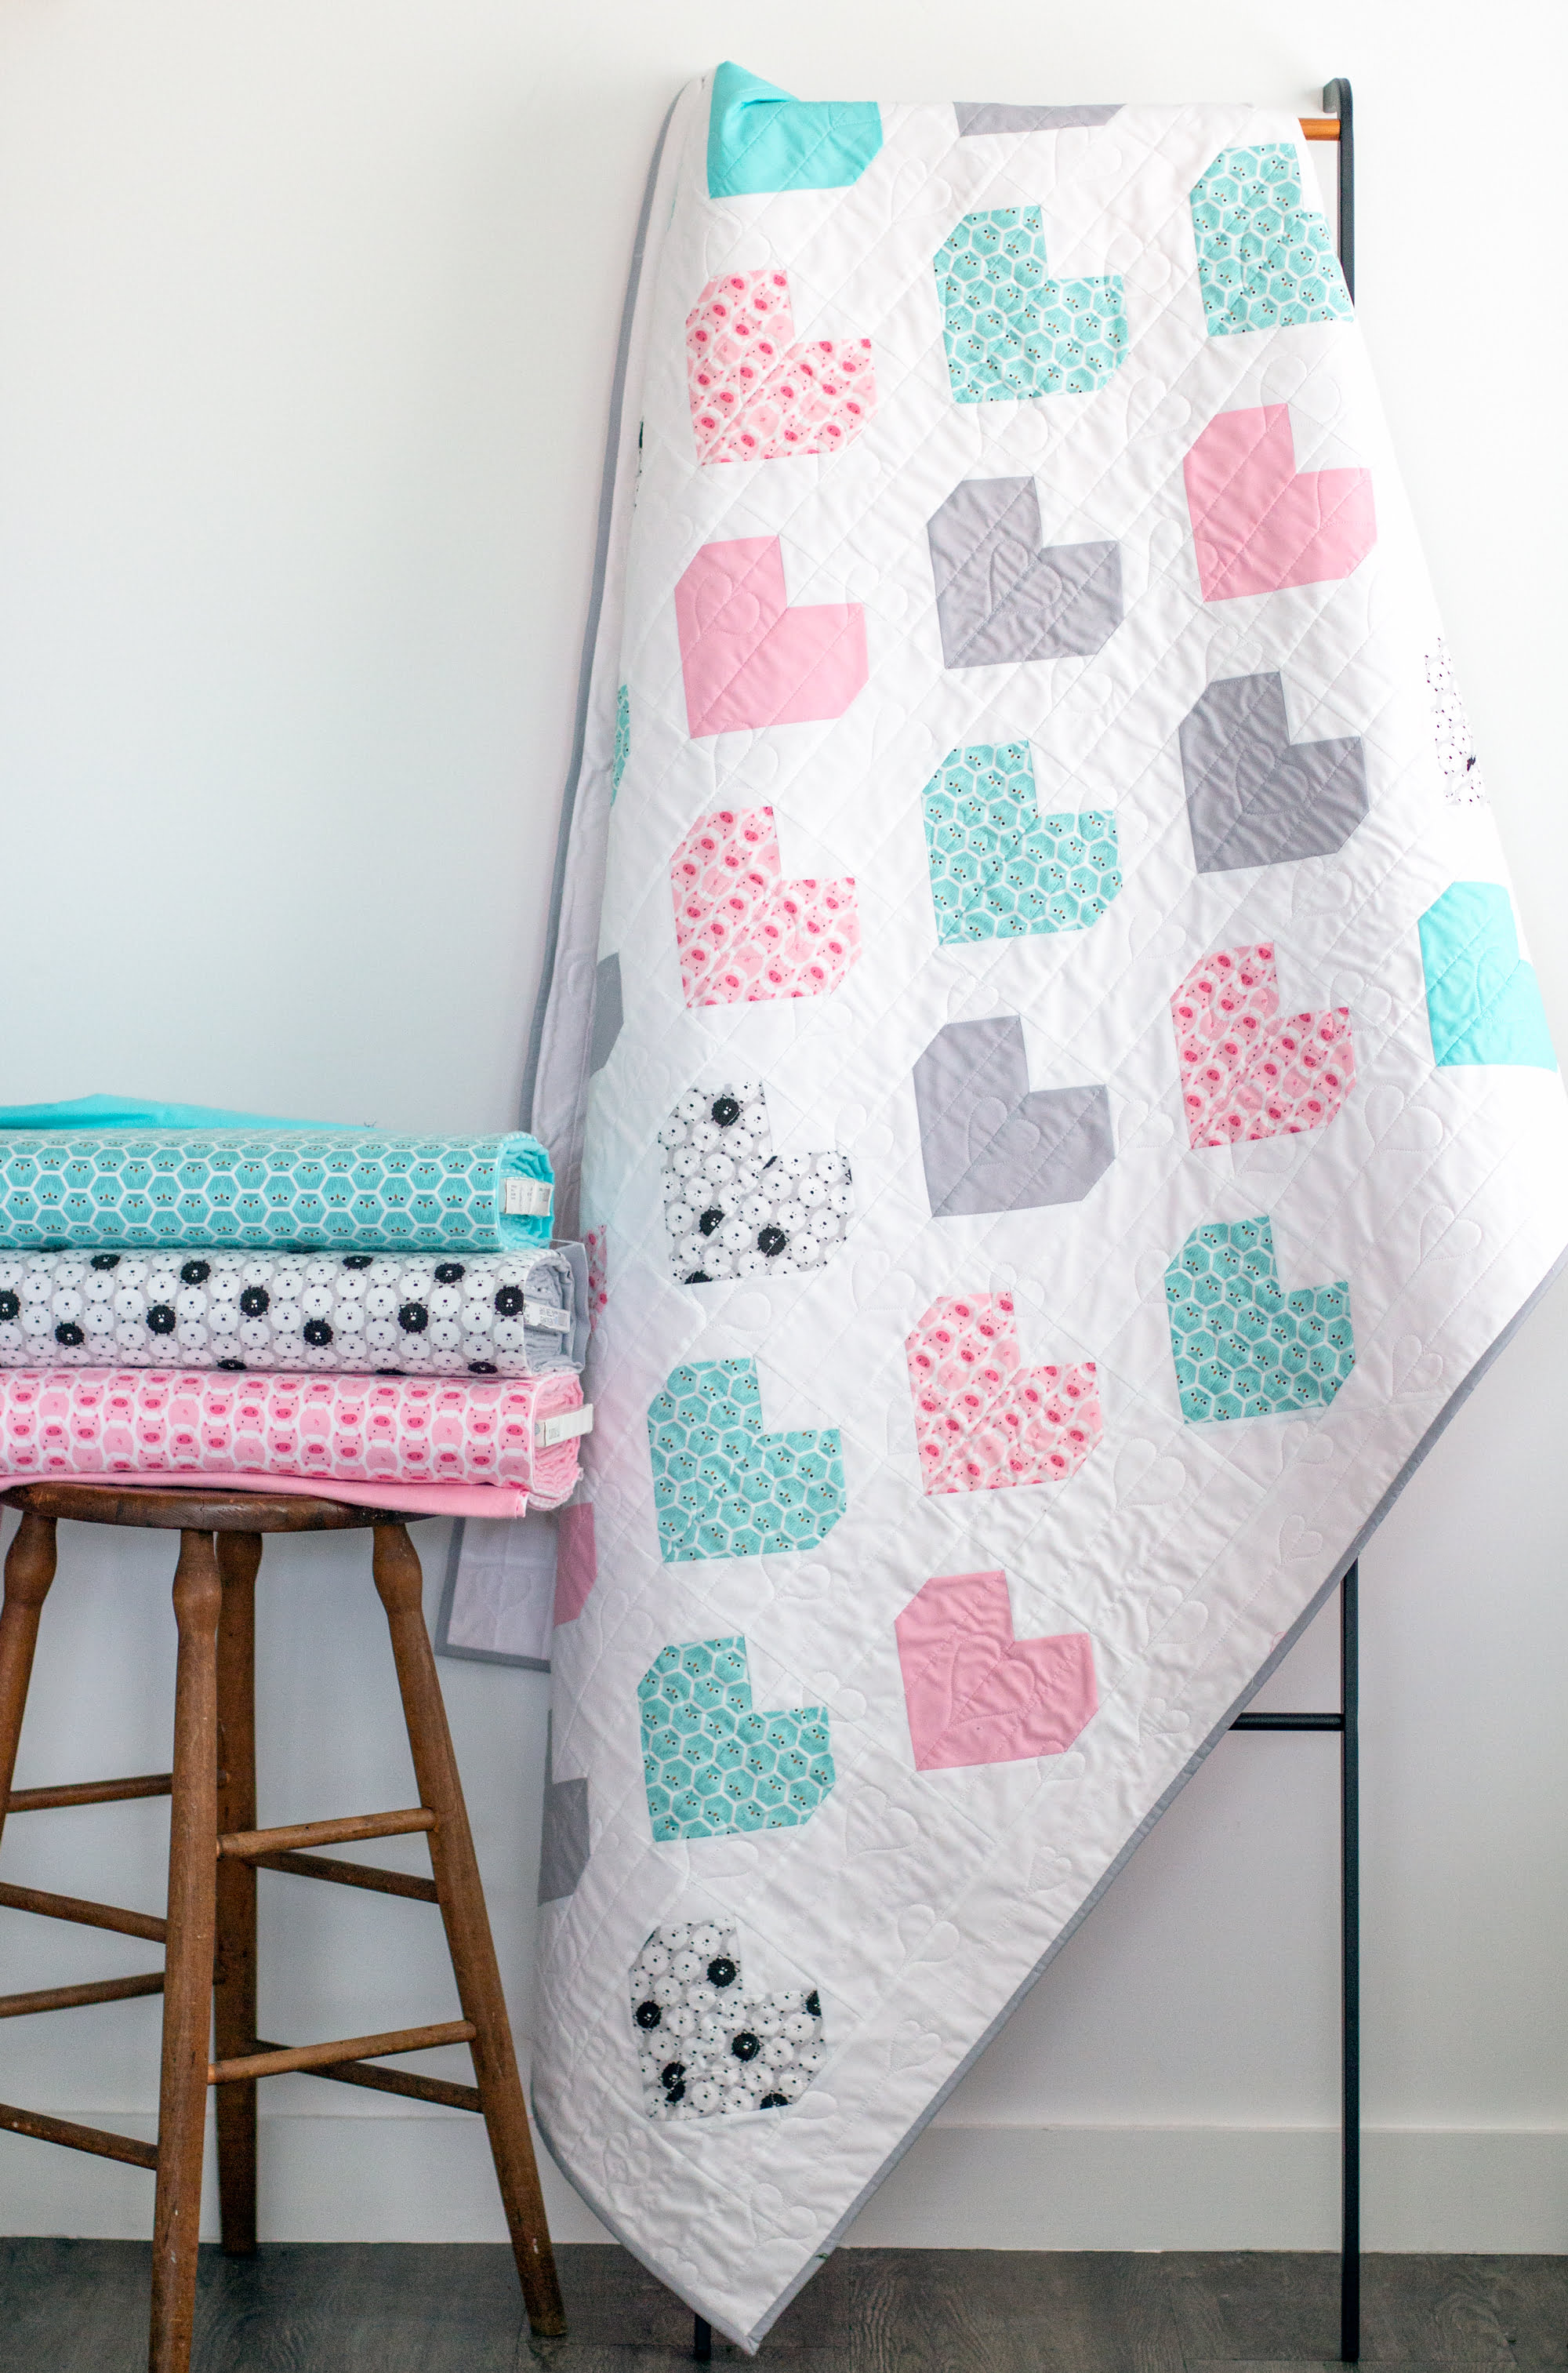 Grand Stores Dolittles By Fabrics Fabrics Cloud 9 Fabrics Voile Cloud 9 Fabrics Knits Hearts Quilt Pattern By Fabrics Now houzz-02 Cloud 9 Fabrics